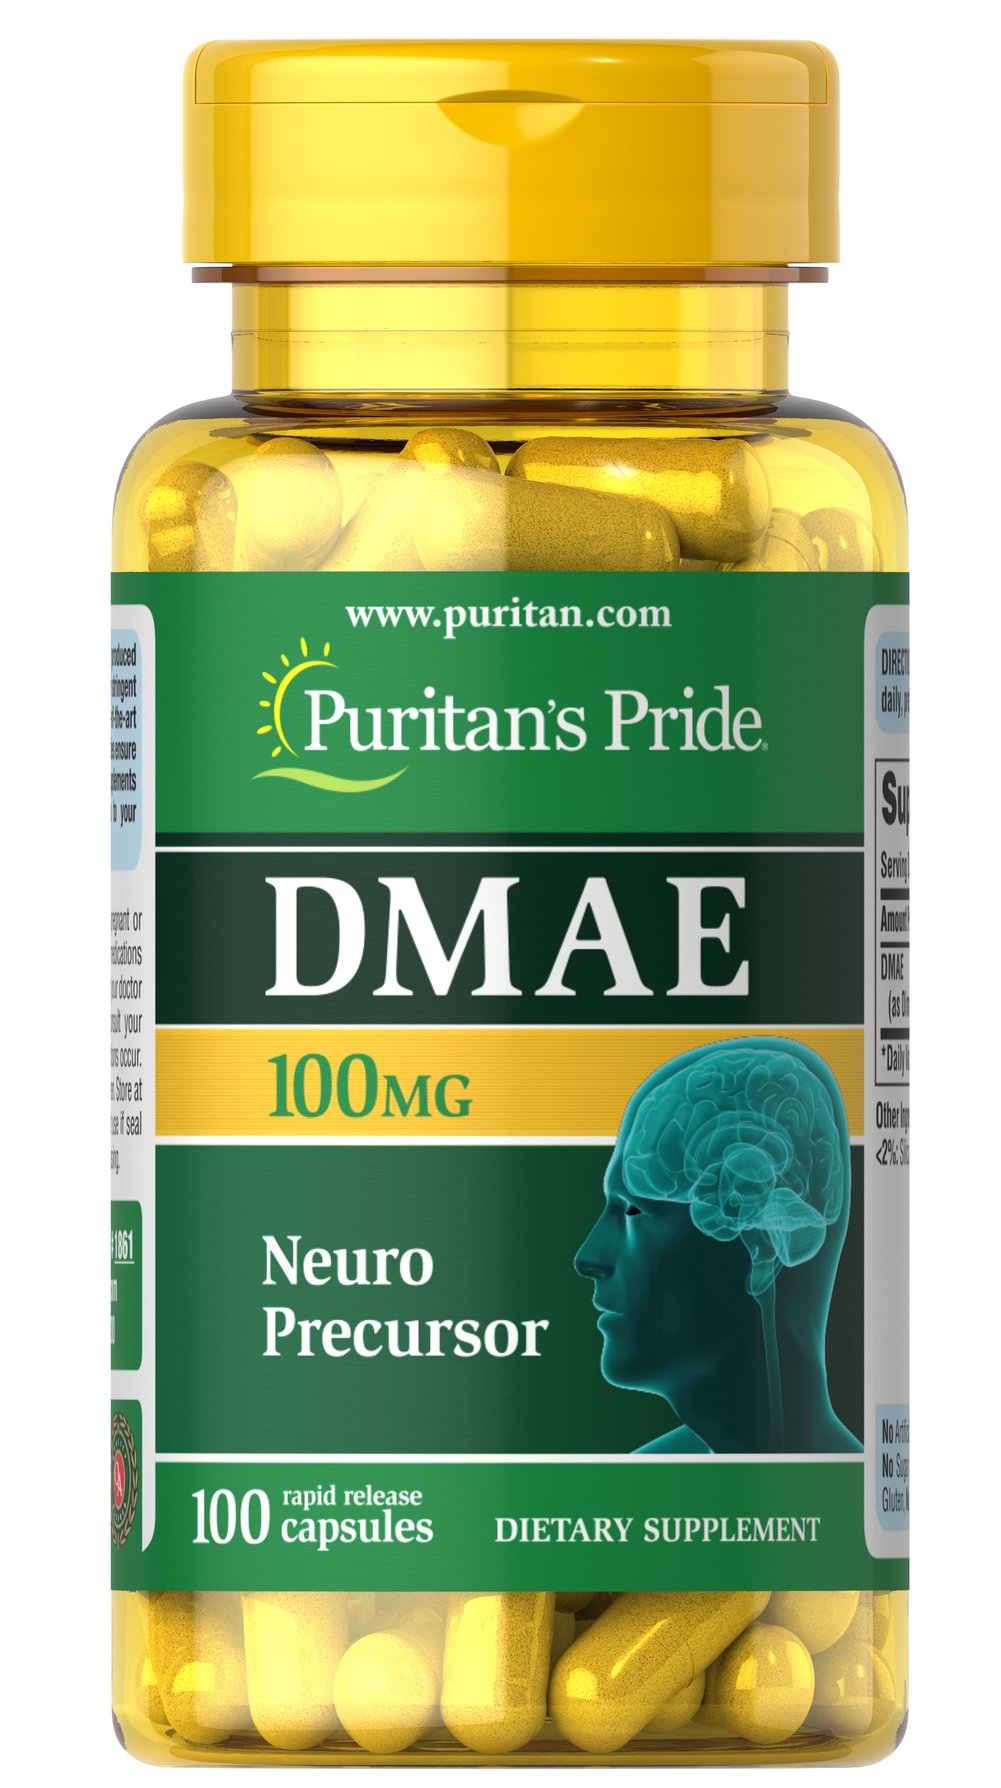 DMAE 100 mg <p>Often known as Dimethylaminoethanol, DMAE is a natural metabolite in the body. DMAE is related to the B factor choline and is a precursor to acetylcholine. Adults can take one capsule daily with a meal.</p> 100 Capsules 100 mg $14.99